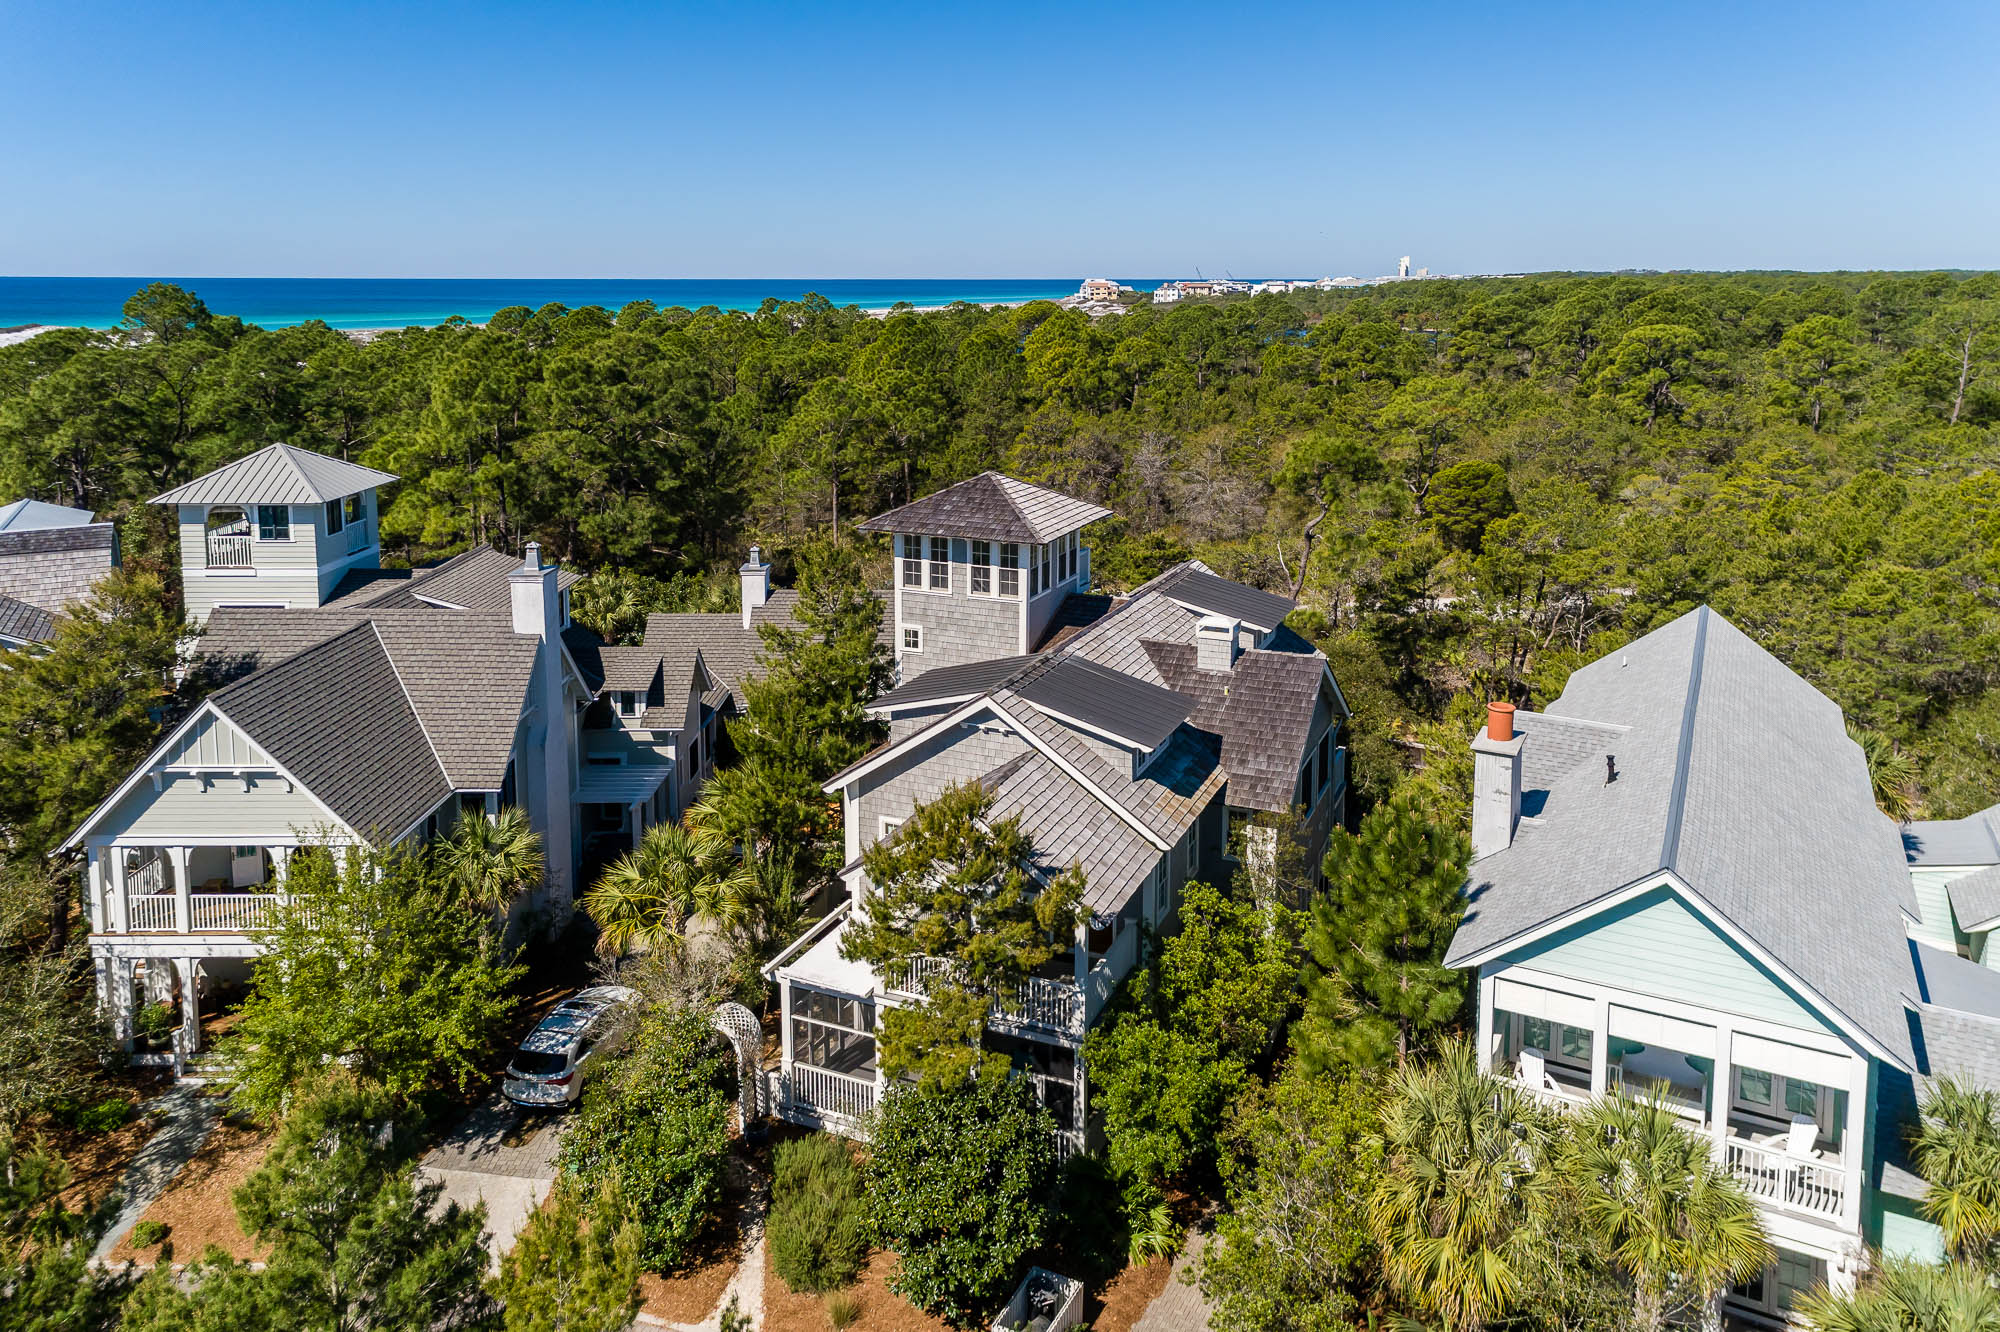 148 coopersmith ln barefoot 30a